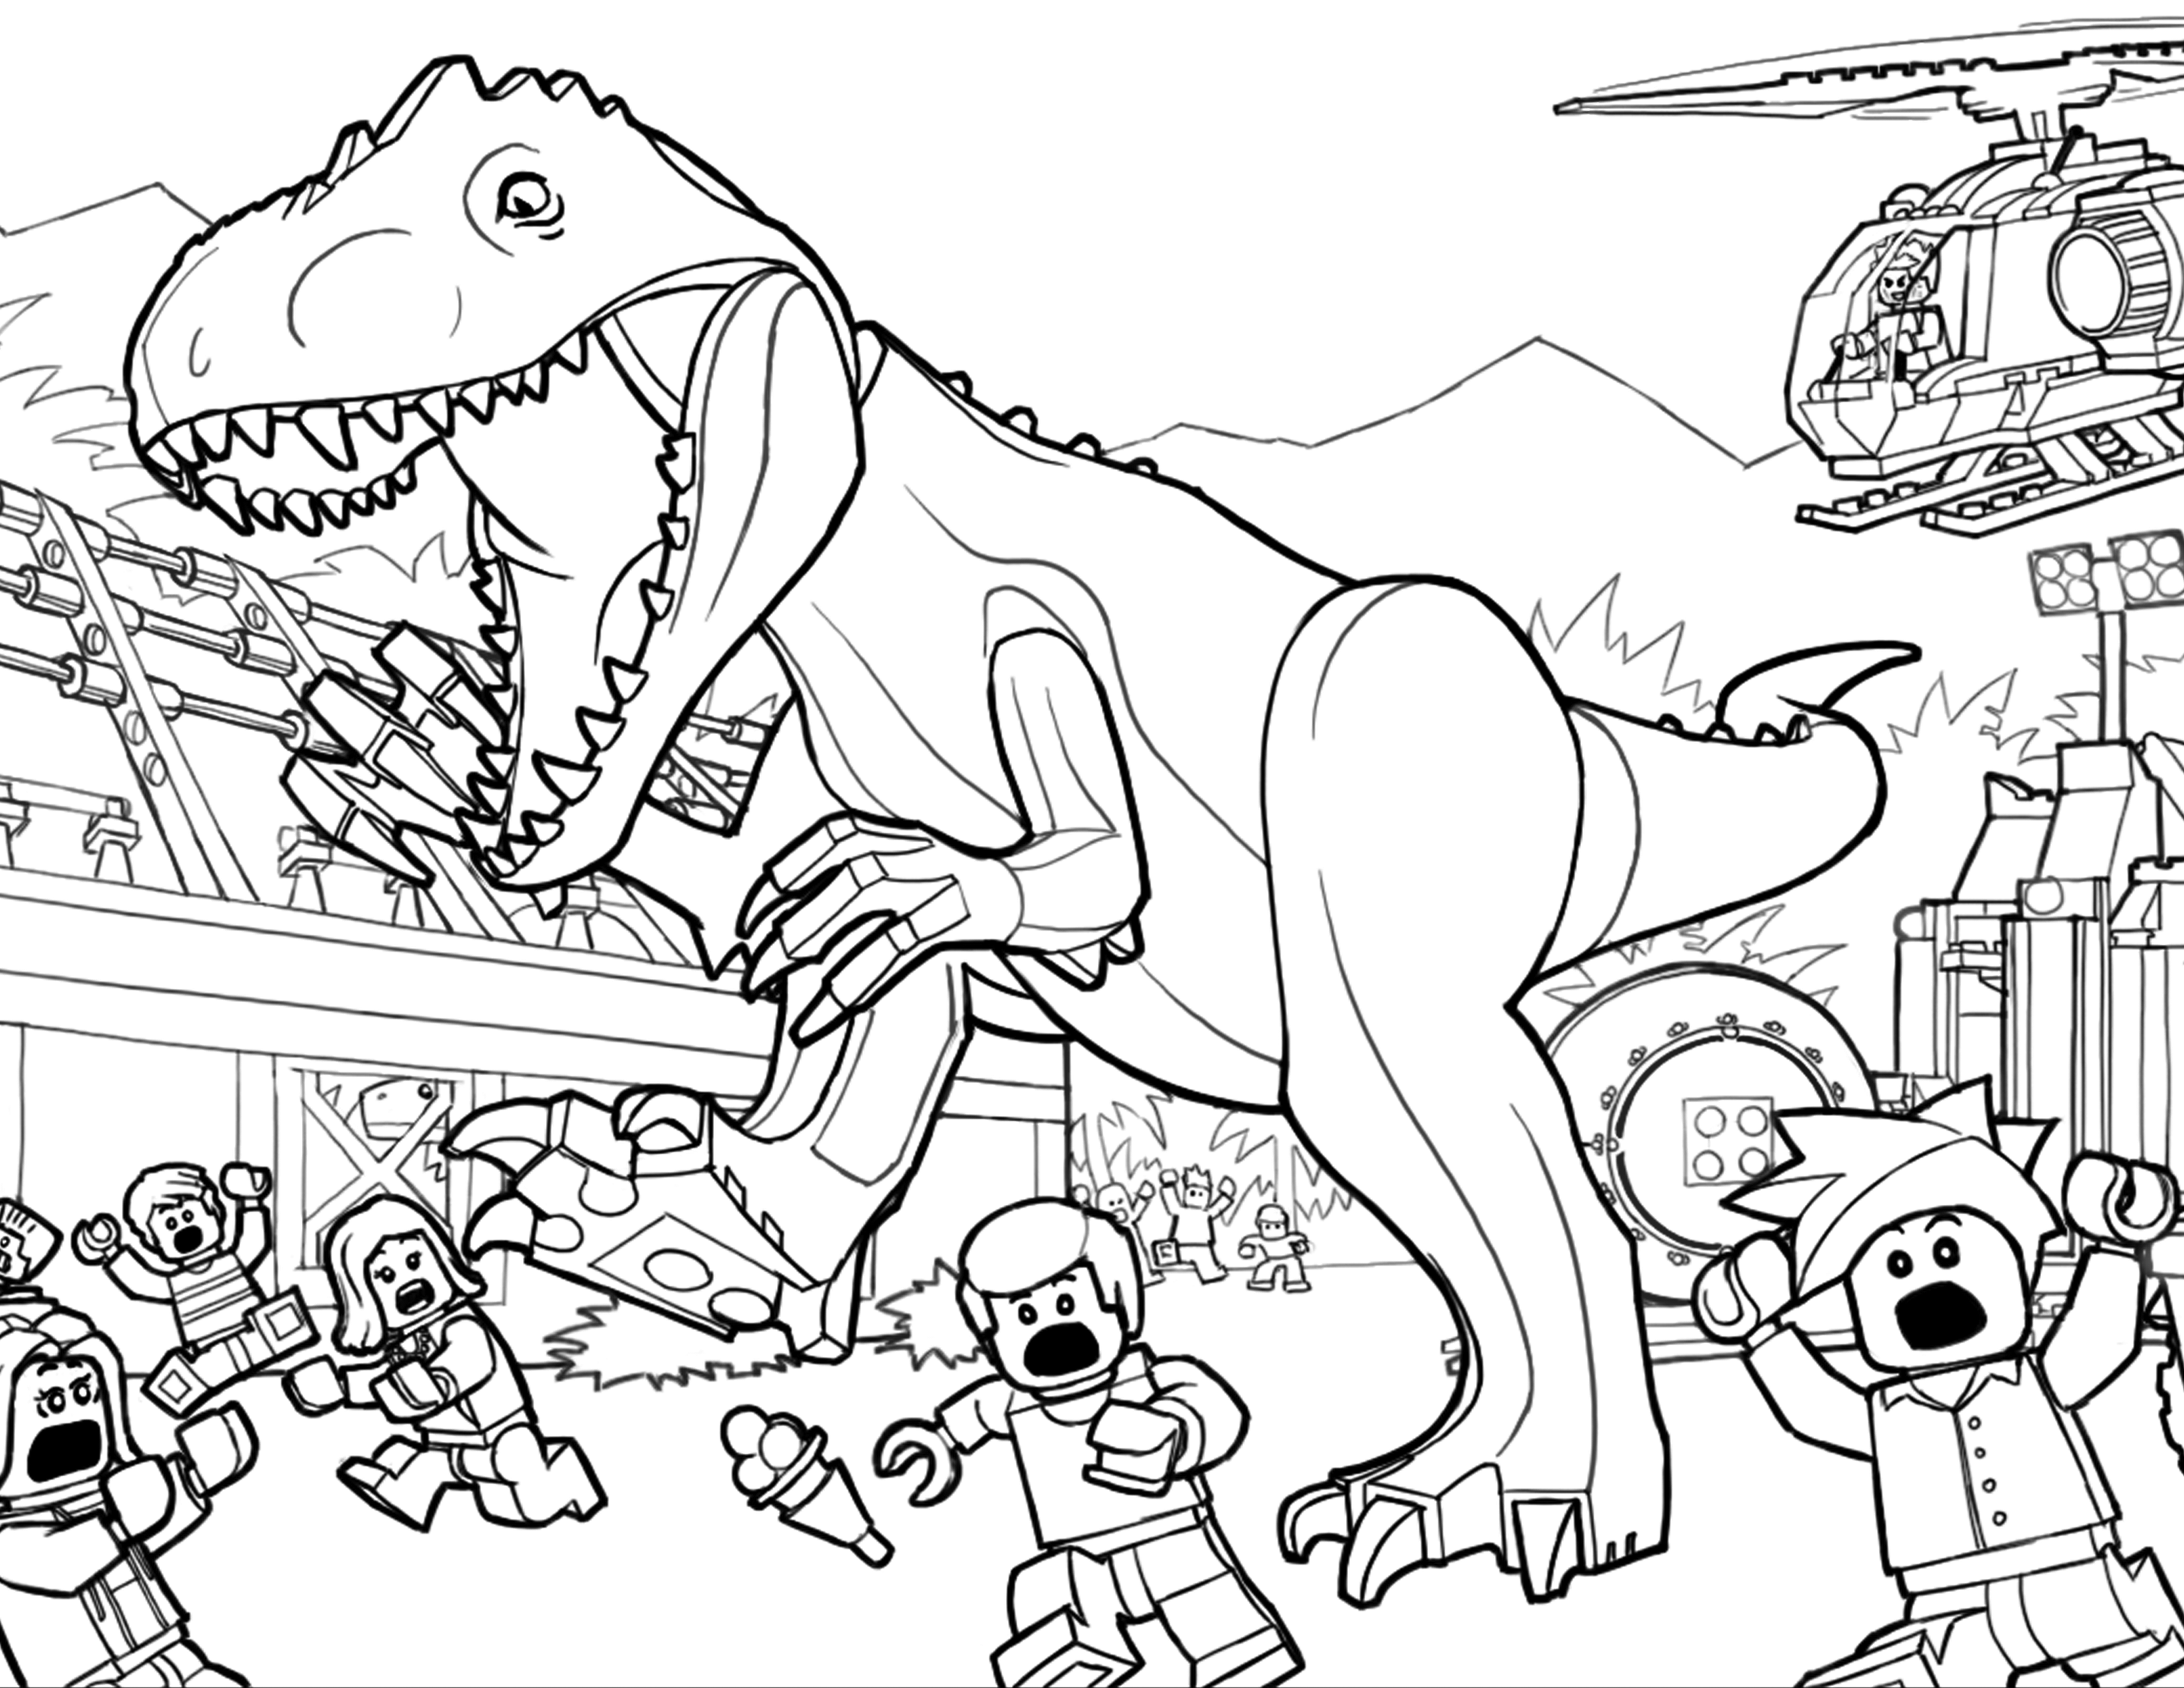 3300x2550 Trex Coloring Pages